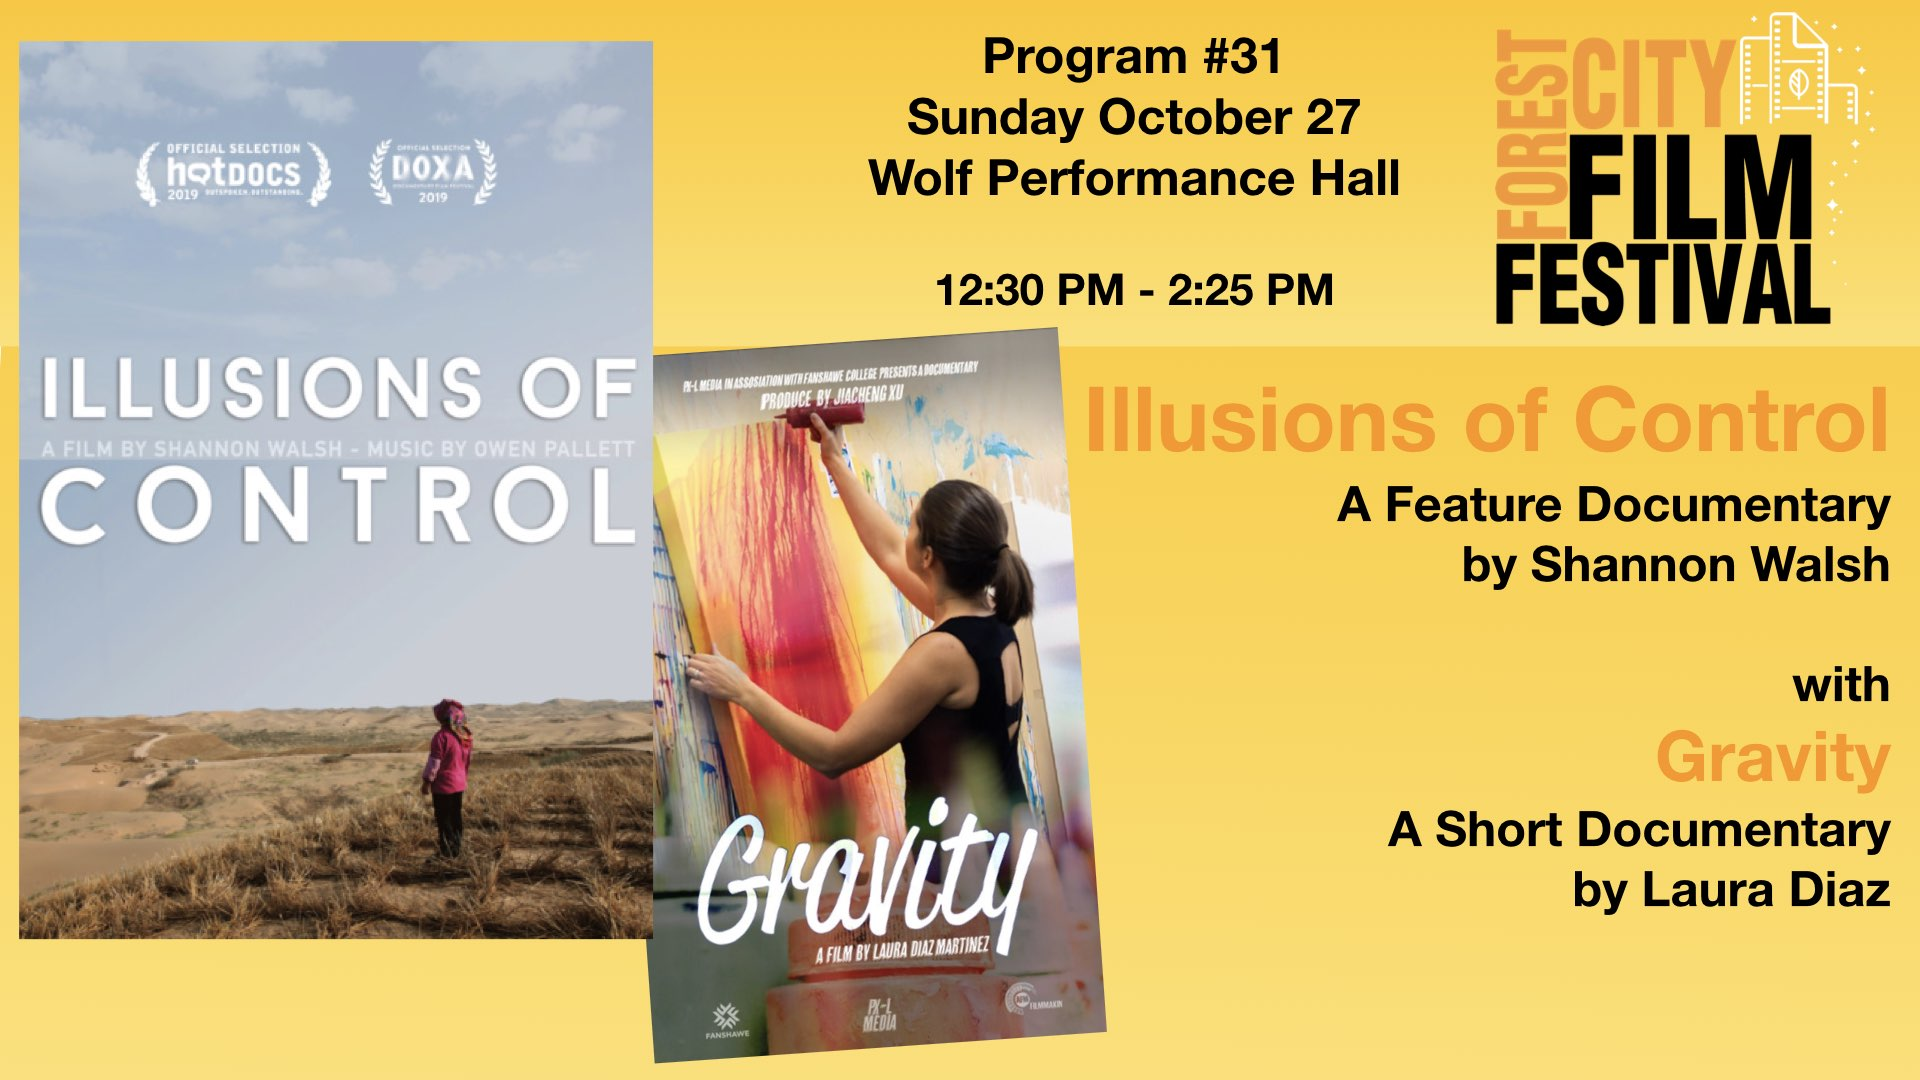 FCFF 2019 - Sunday Early Afternoon at Wolf, Program #31 - Illusions of Control and Gravity